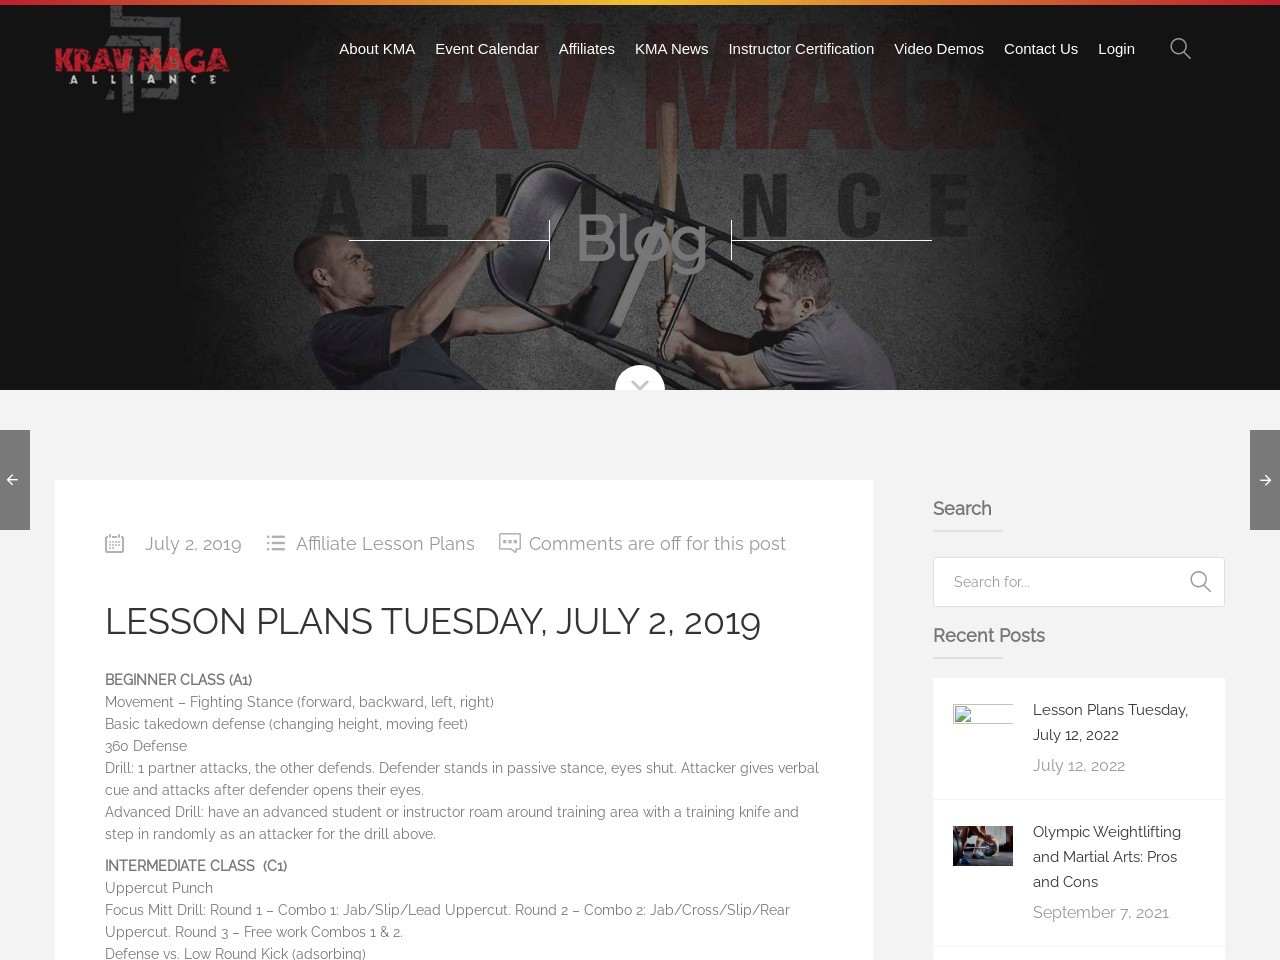 Lesson Plans Tuesday, July 2, 2019